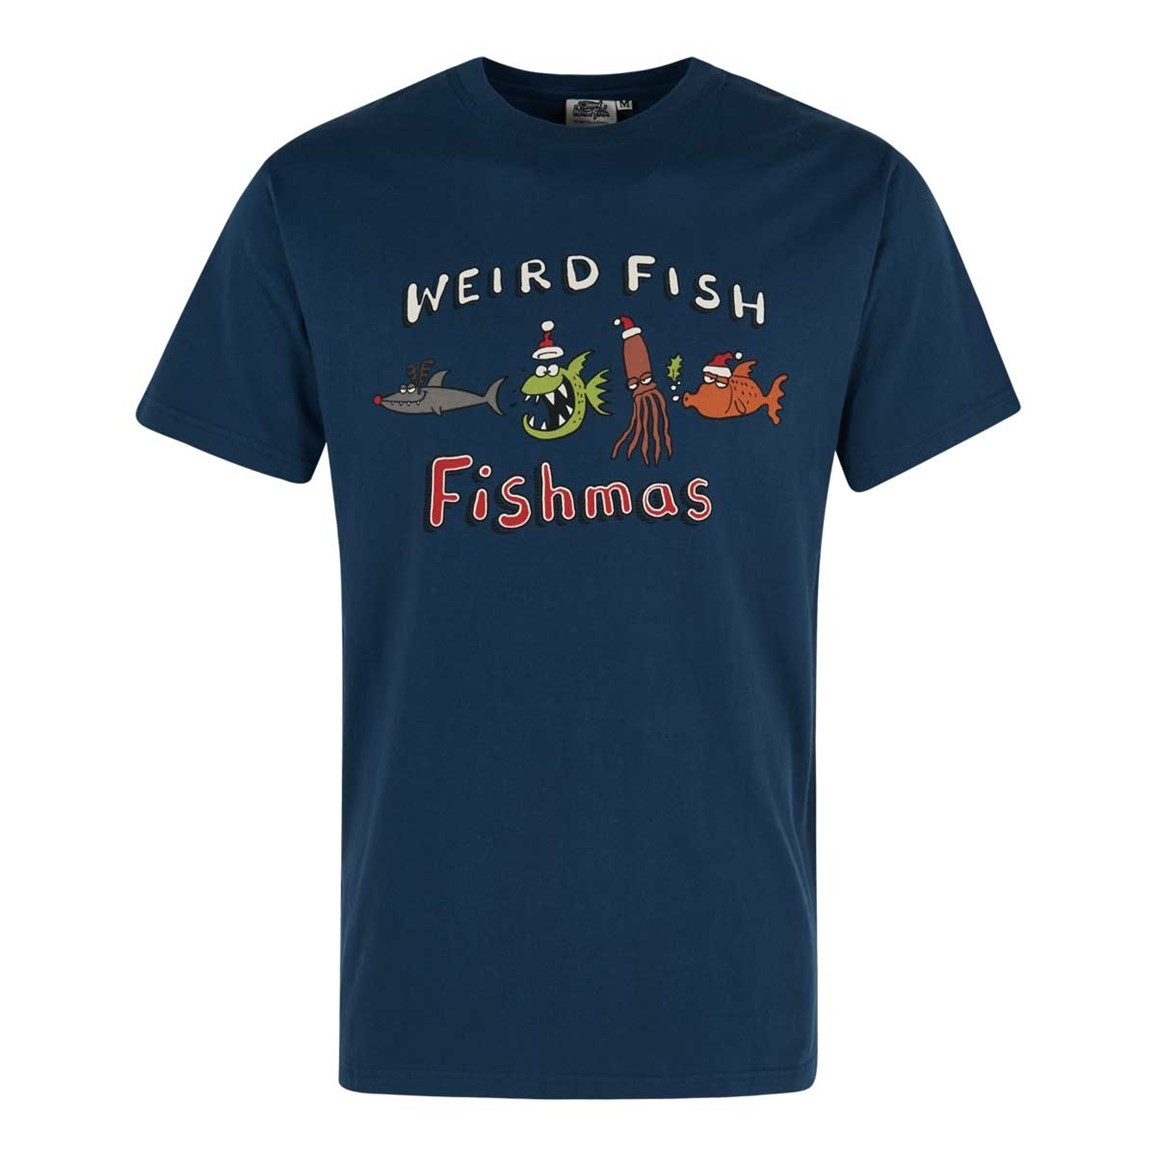 Weird Fish Fishmas Artist T-Shirt Ensign Blue